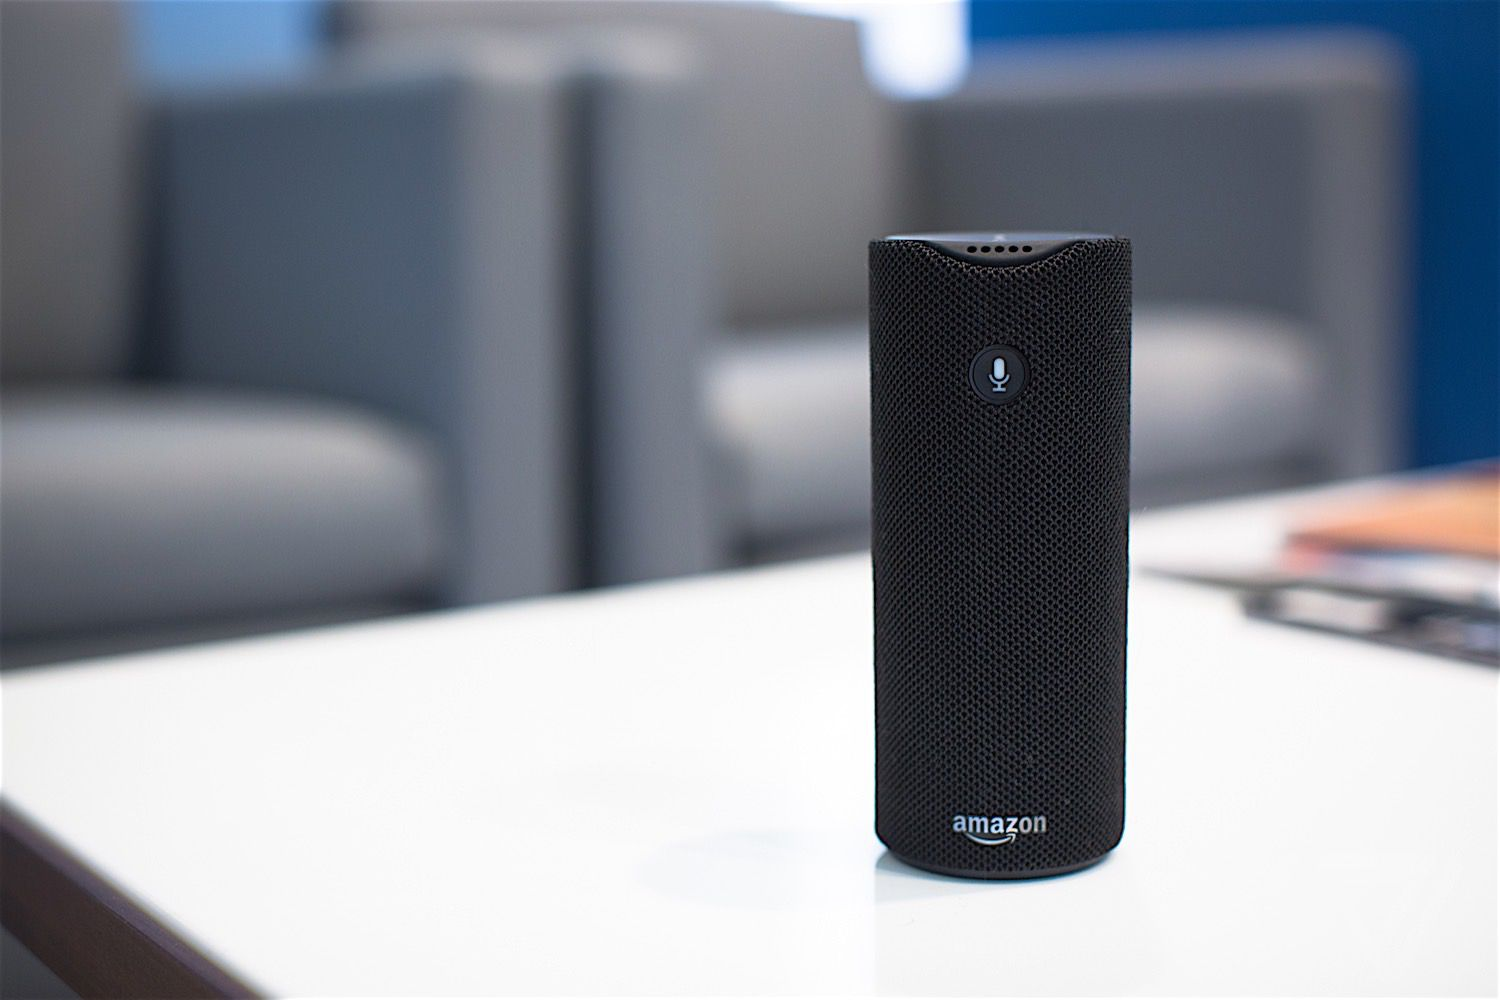 20160405-amazon-tap-speaker-19.0.jpg (1500×1000)